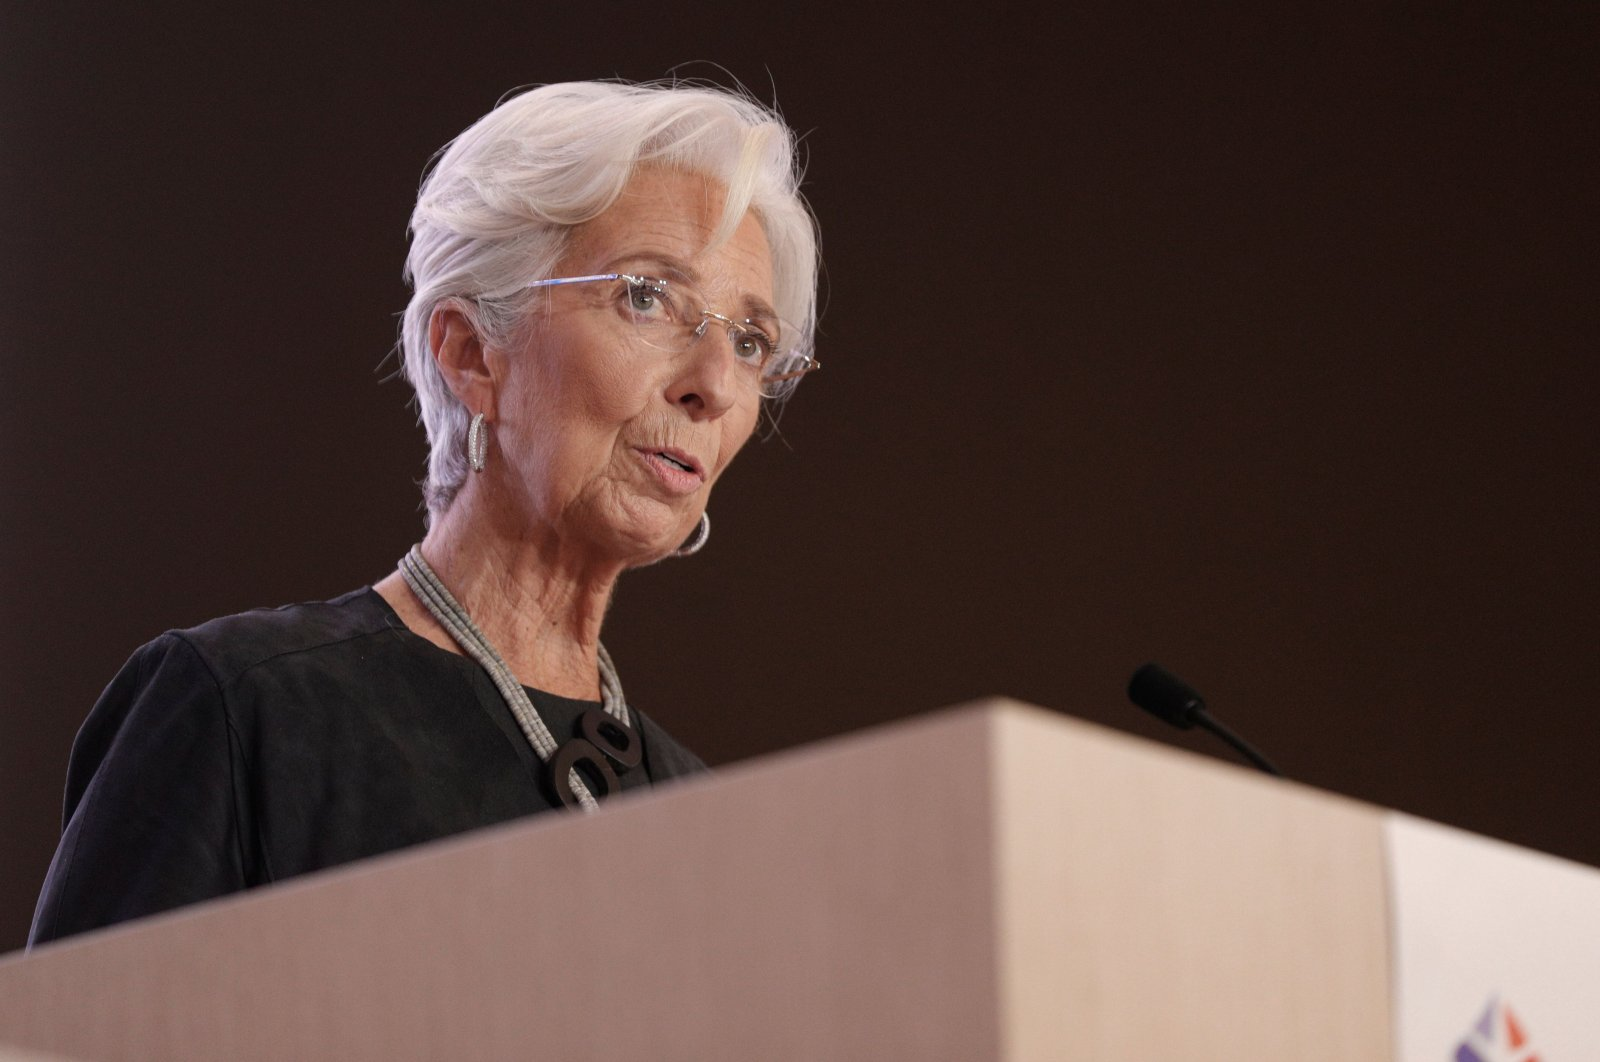 European Central Bank (ECB) President Christine Lagarde speaks during the 16th Congress of Regions (Congres des Regions) in Saint-Ouen, north of Paris, Oct. 19, 2020. (AFP Photo)